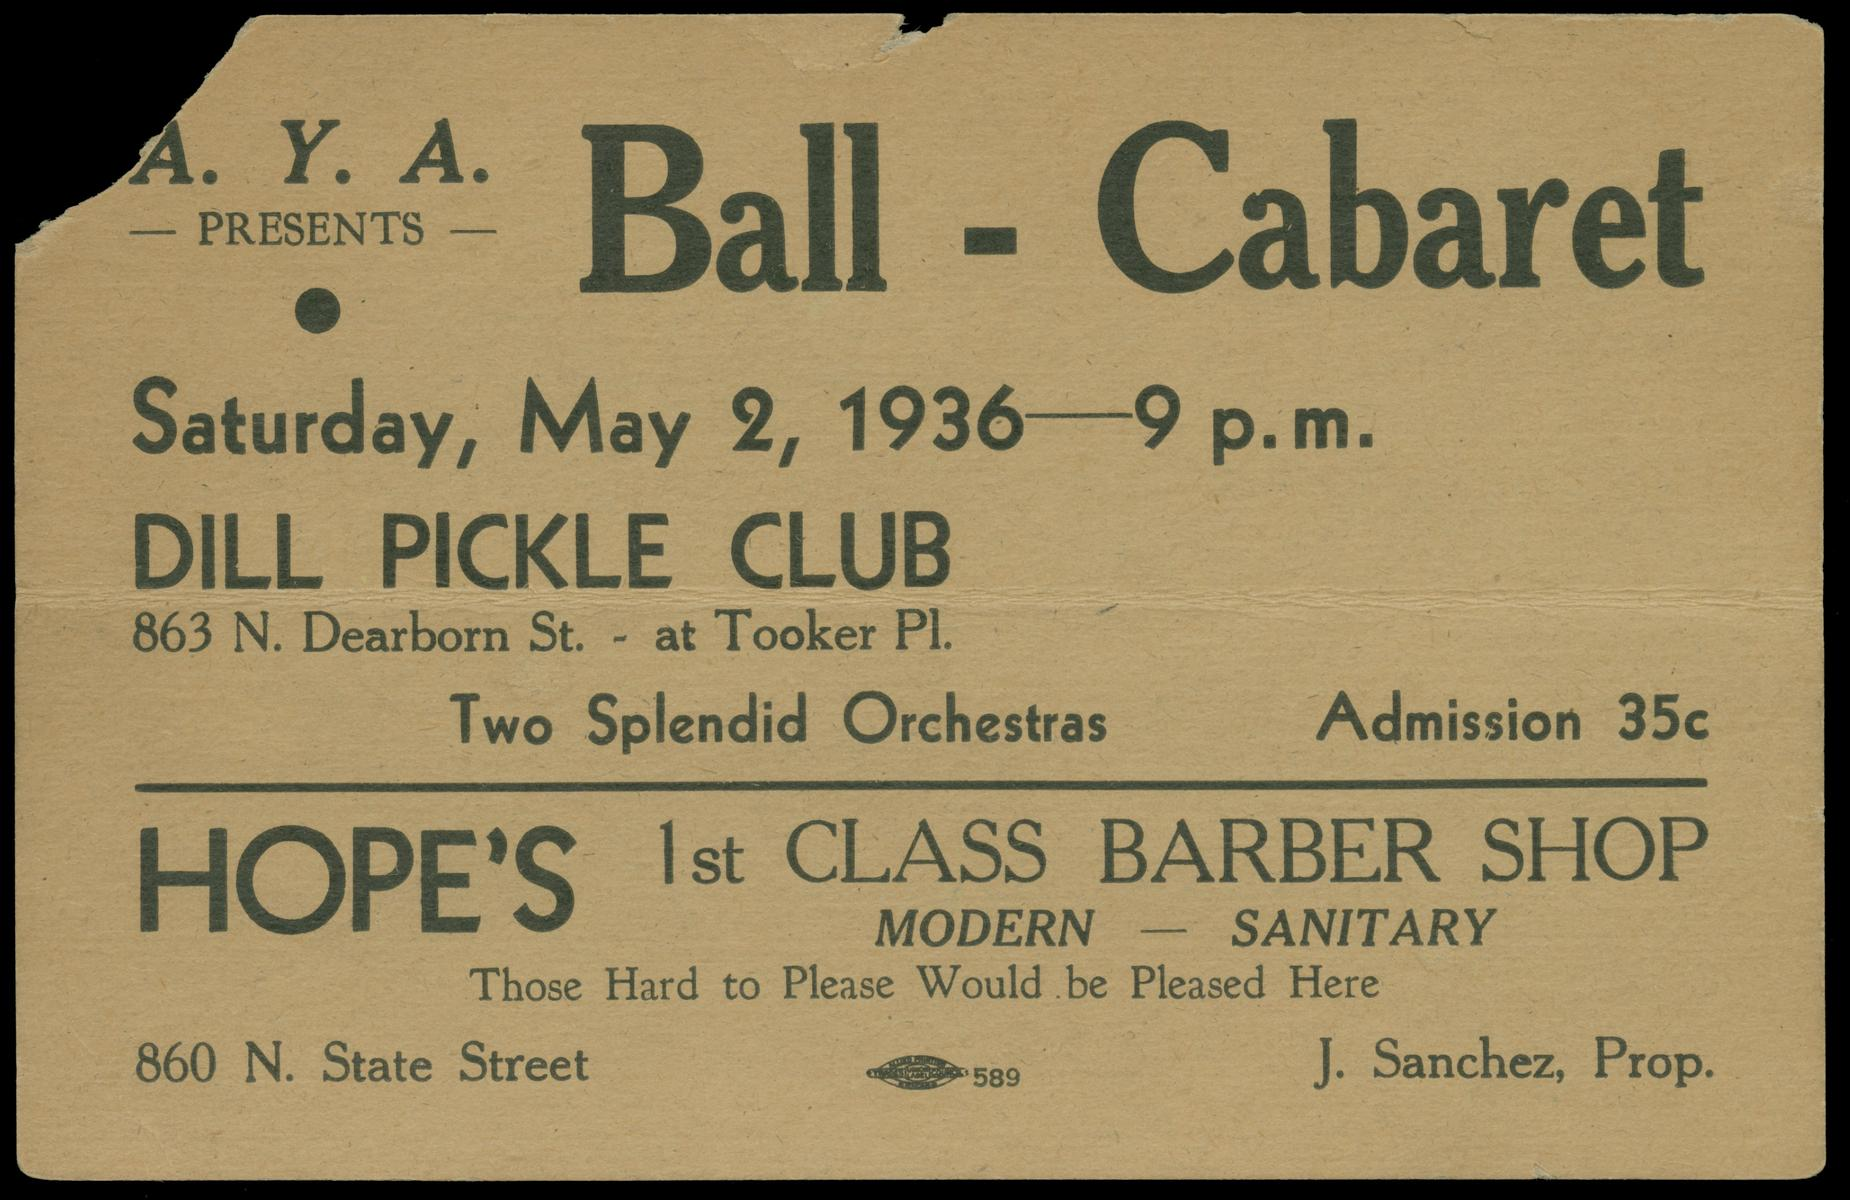 A.Y.A. presents Ball-Cabaret, Saturday, May 2, 1936